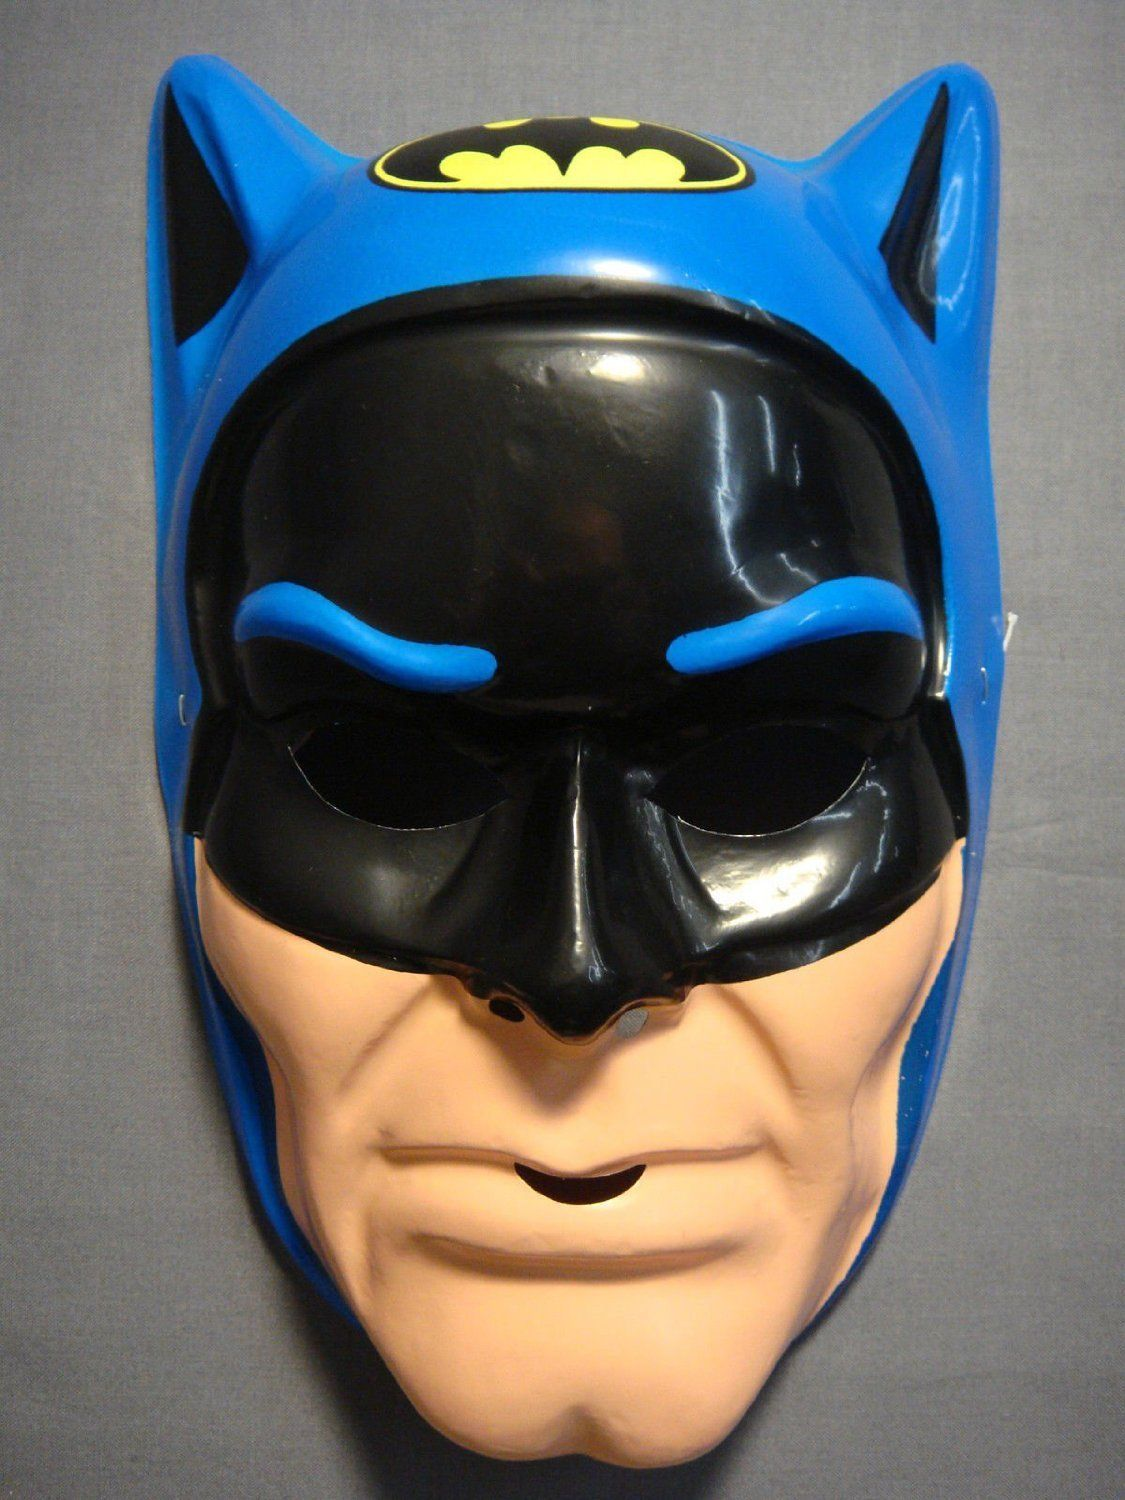 Primary image for BLUE DC COMICS BATMAN HALLOWEEN MASK PVC KID SIZE ONE SIZE FITS MOST